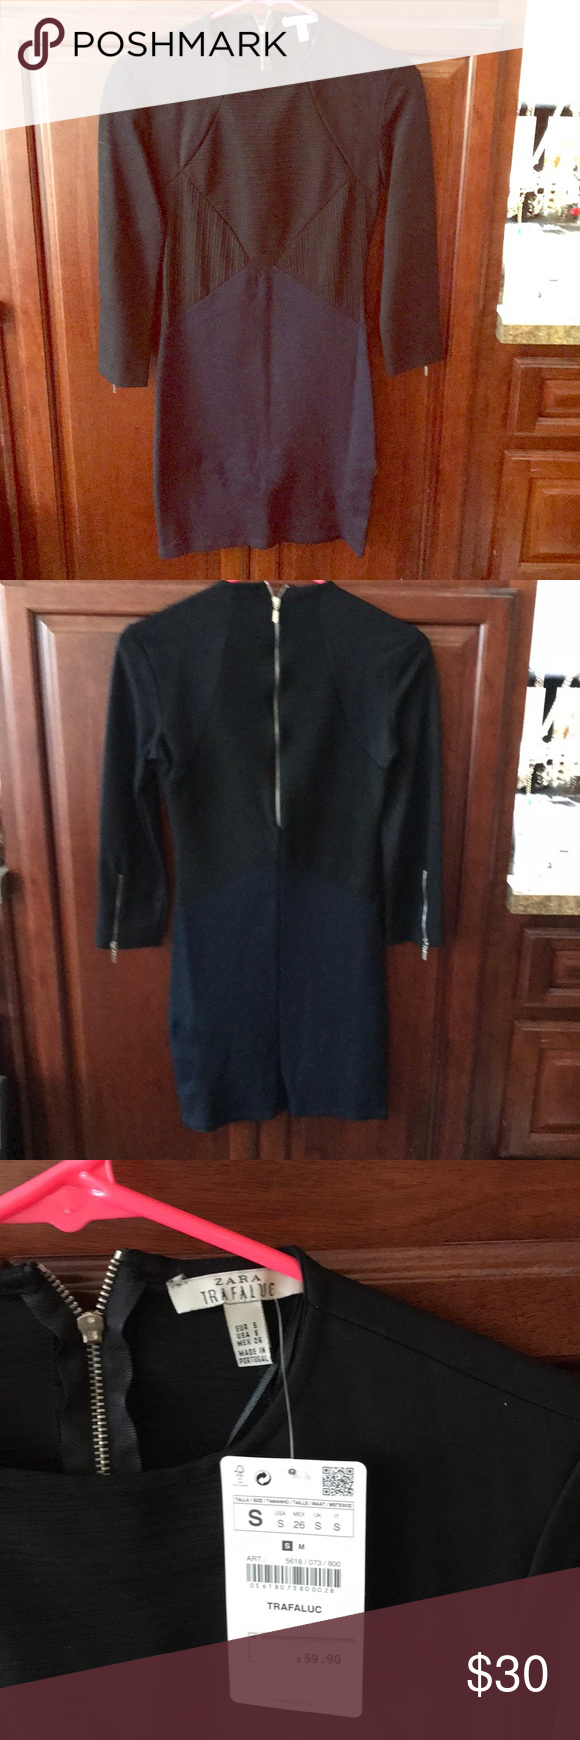 Zara long sleeve navy blueblack dress adorable dress from zara